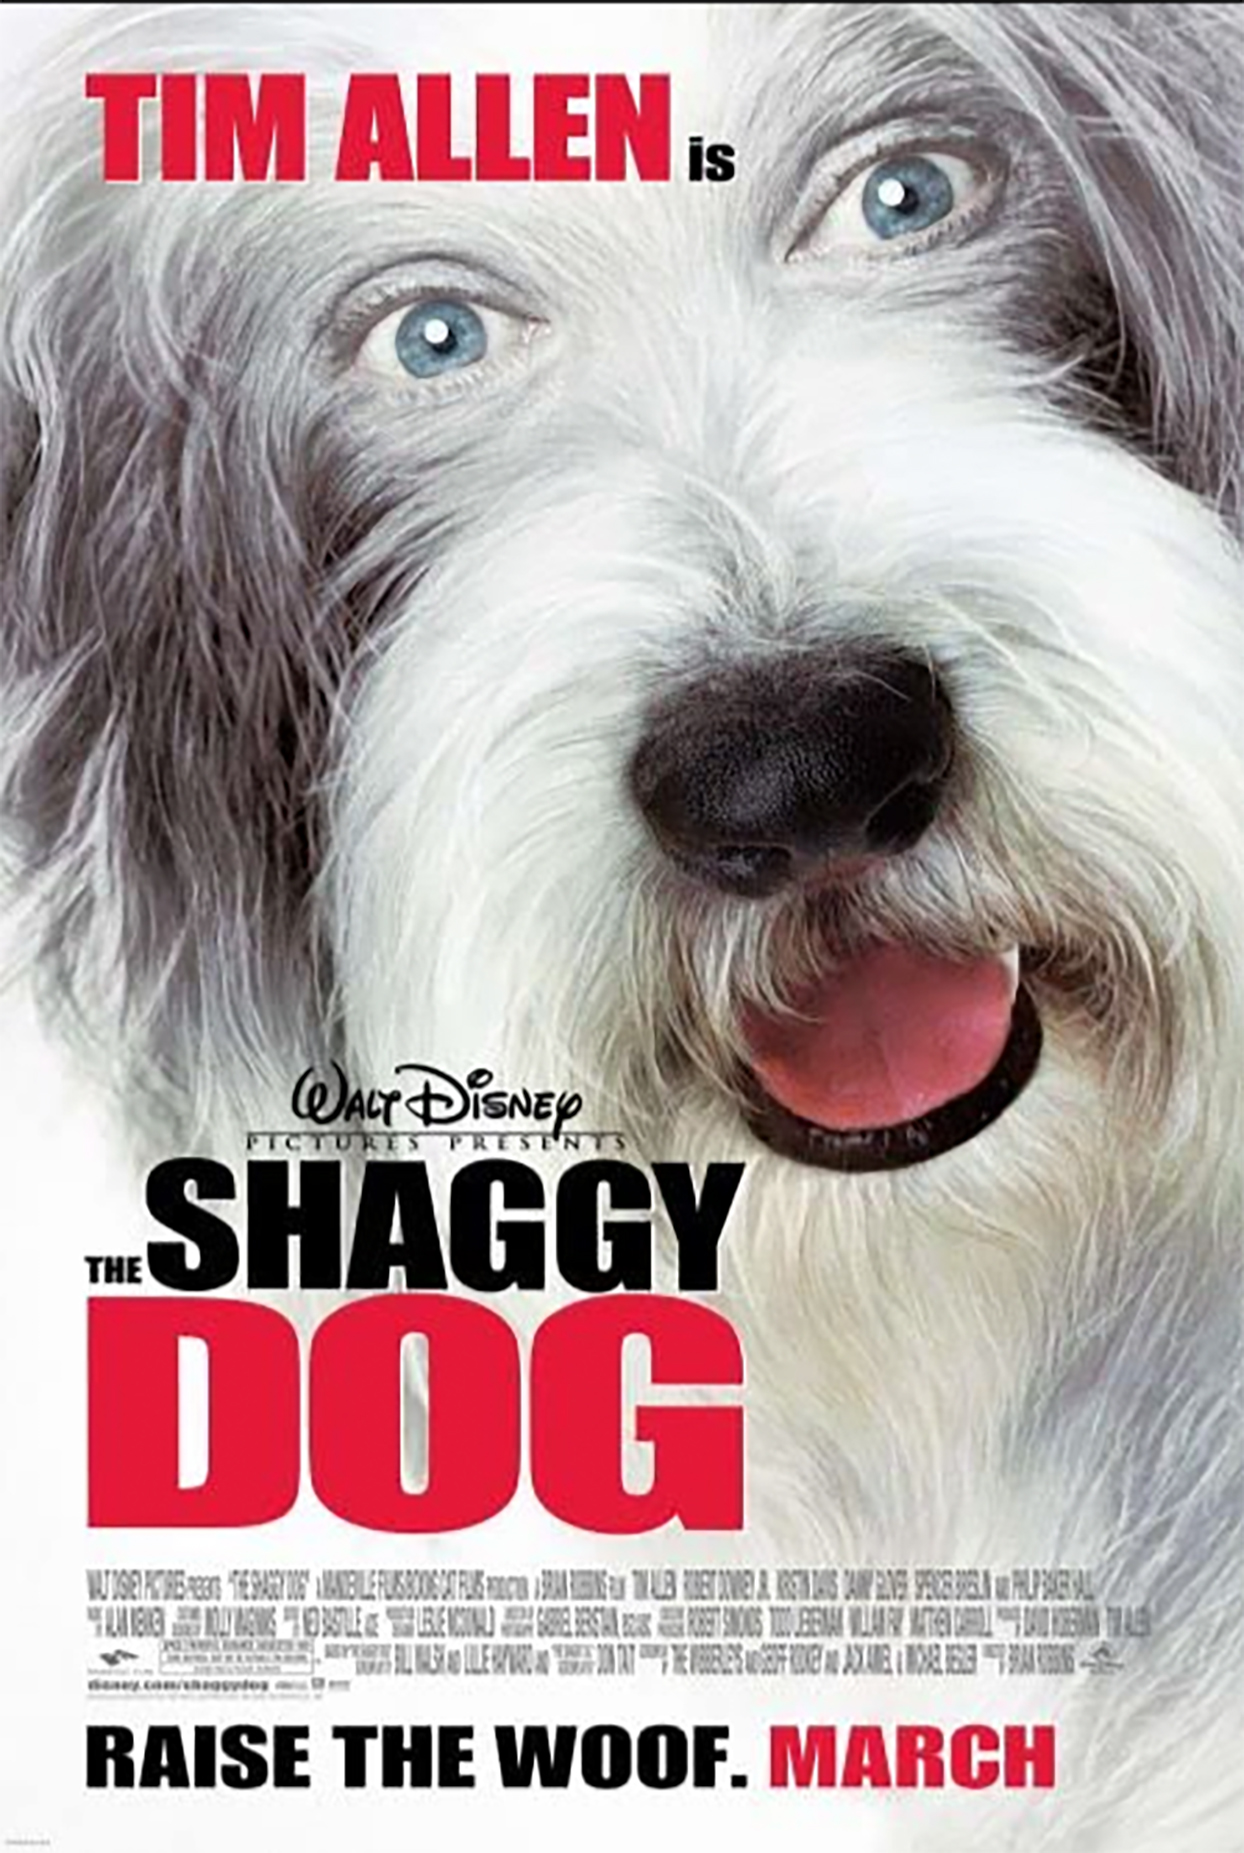 the shaggy dog movie poster with a bearded collie